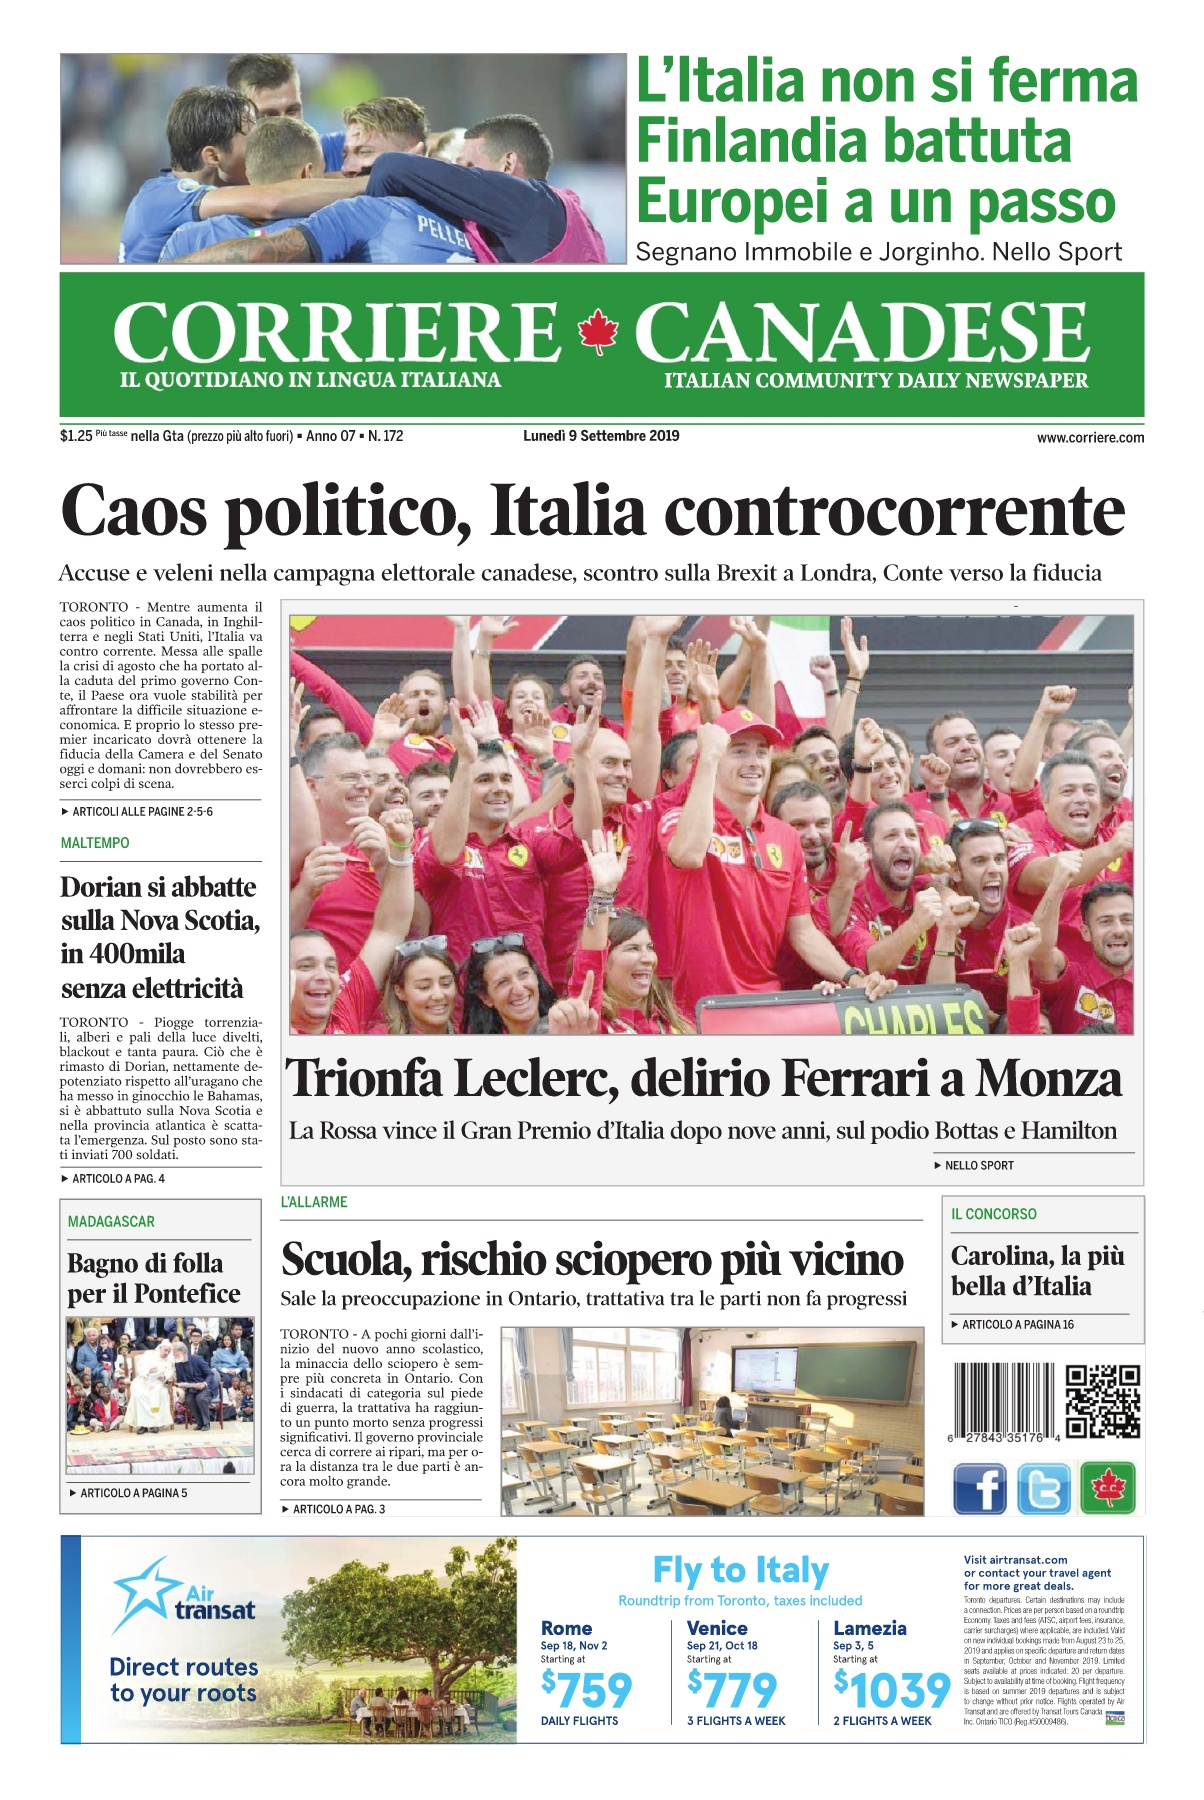 Corriere Canadese 9 Settembre 2019 Pages 1 16 Text Version Anyflip